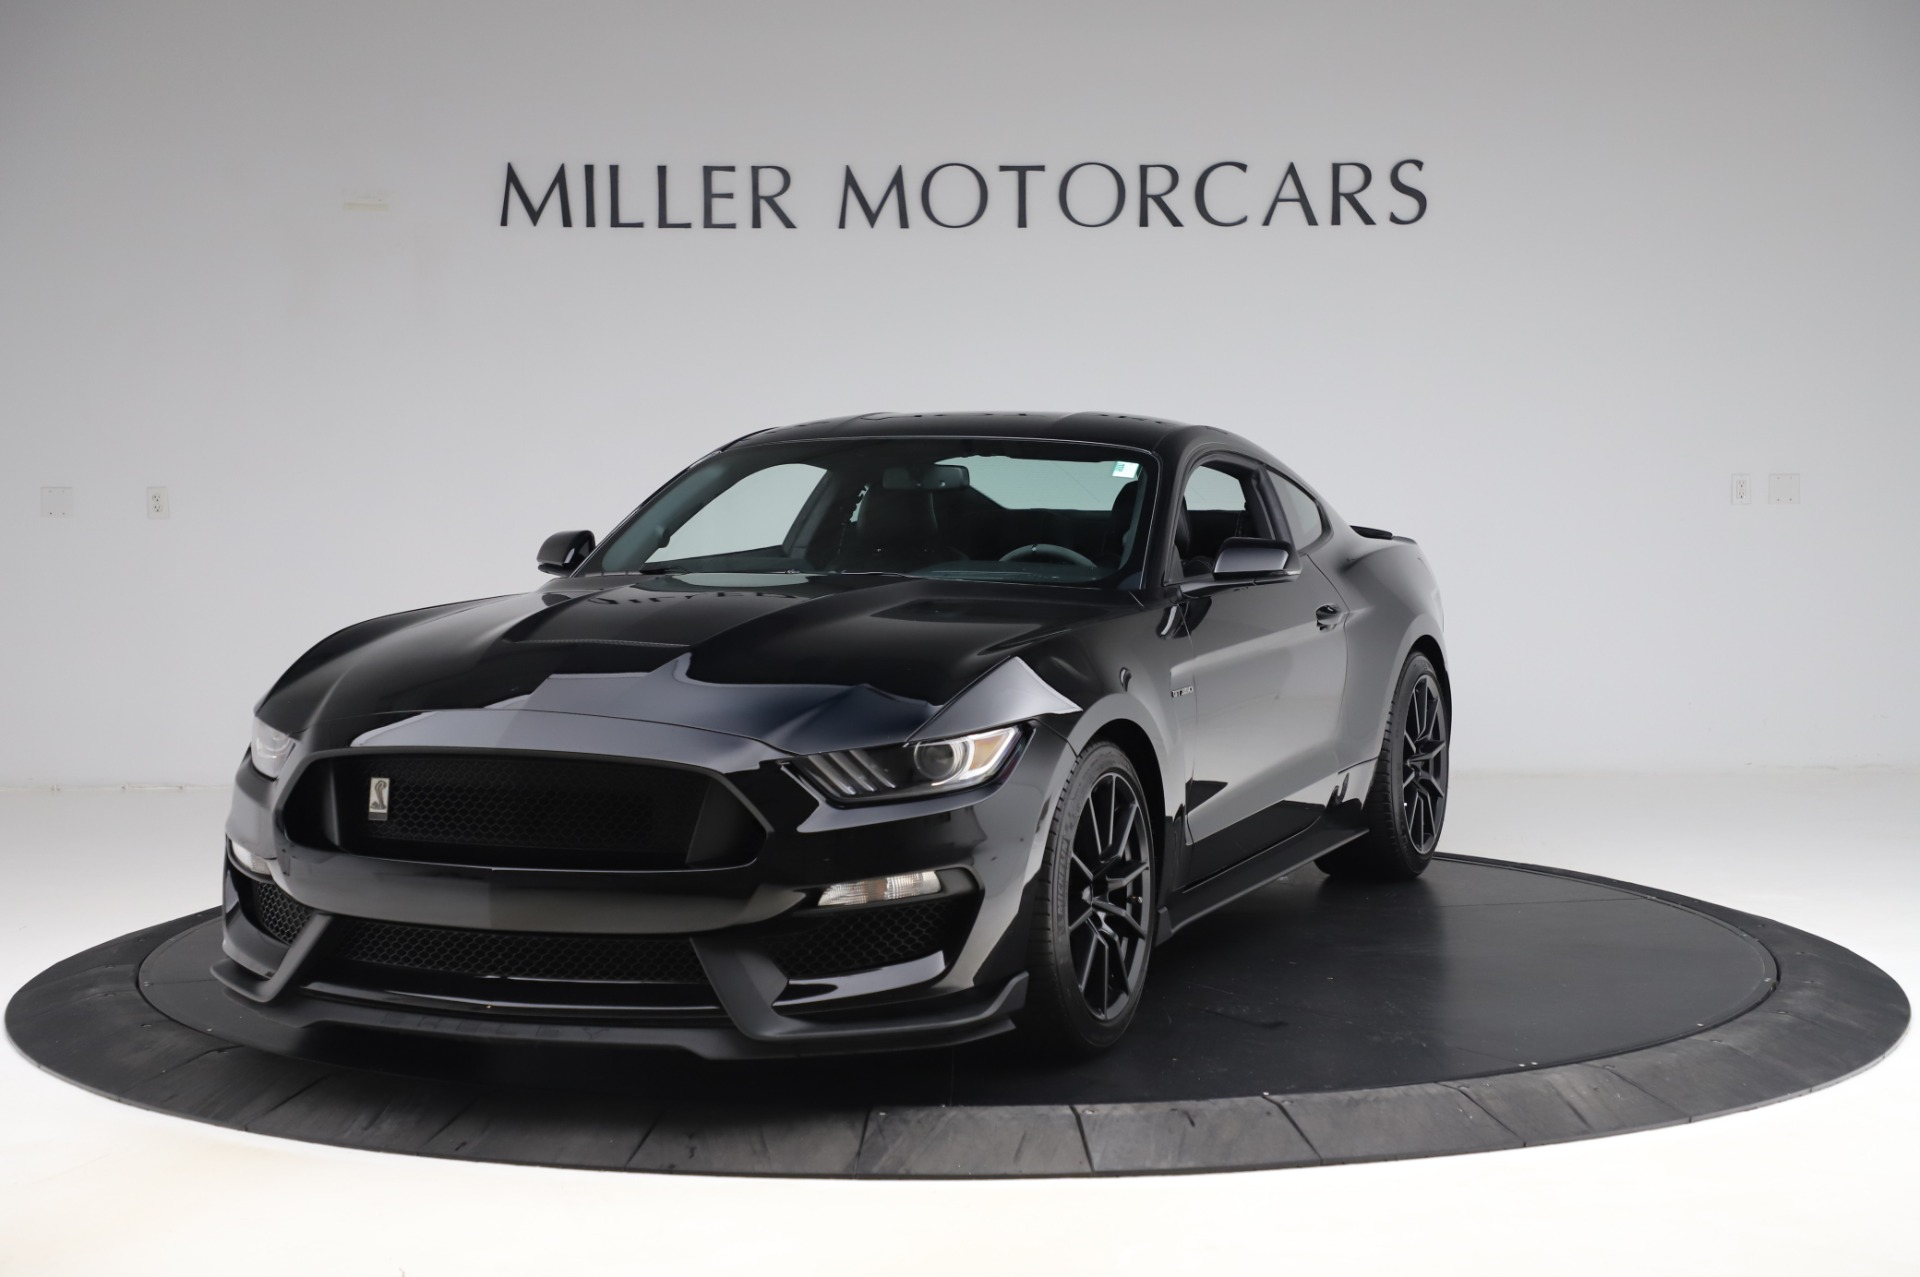 Used 2016 Ford Mustang Shelby GT350 for sale $47,900 at Pagani of Greenwich in Greenwich CT 06830 1